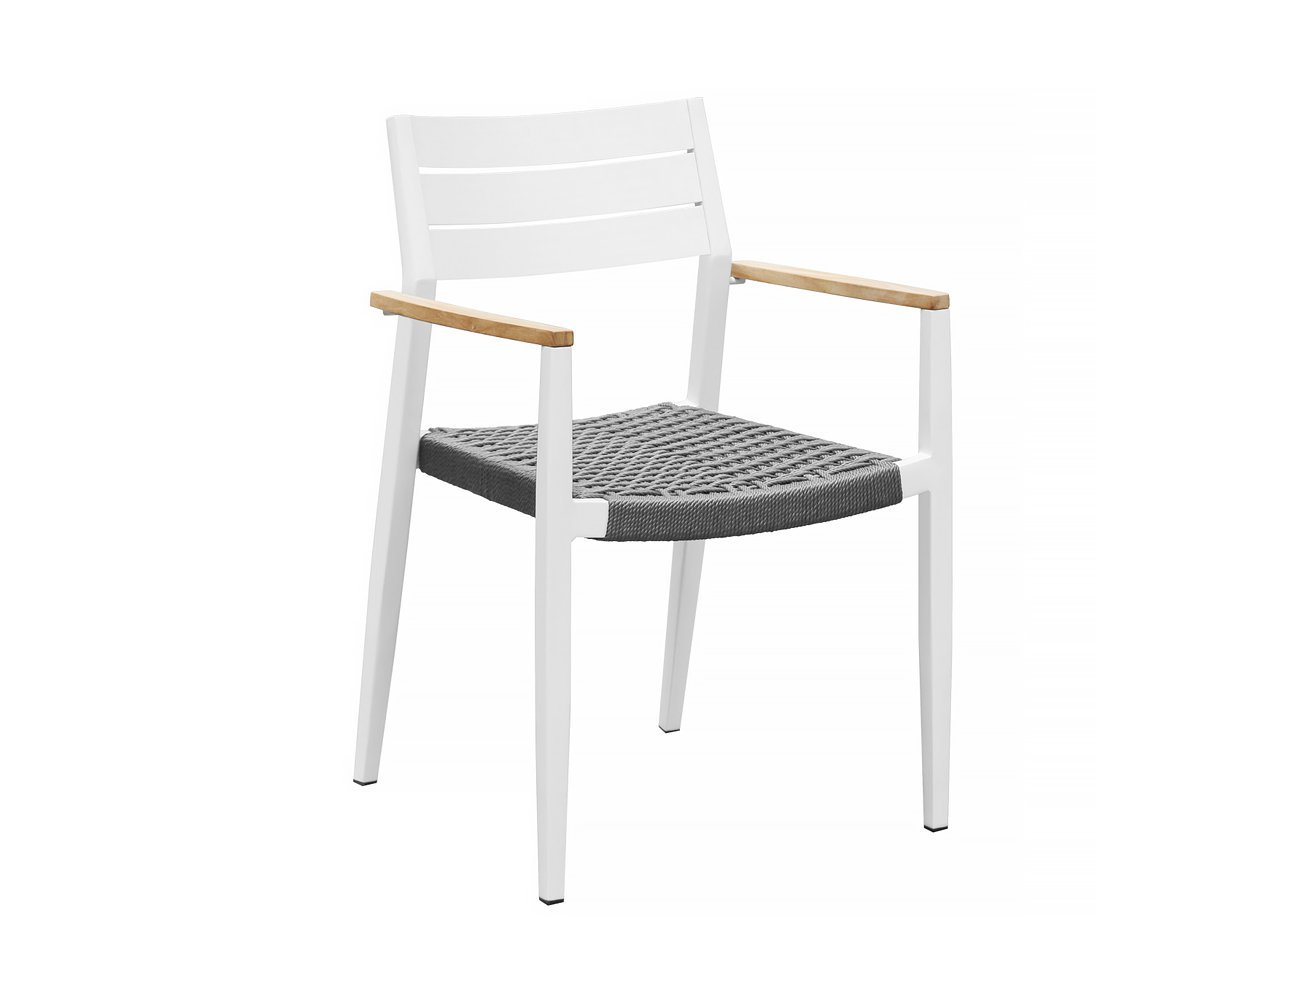 Albatross Outdoor Dining Chair - White